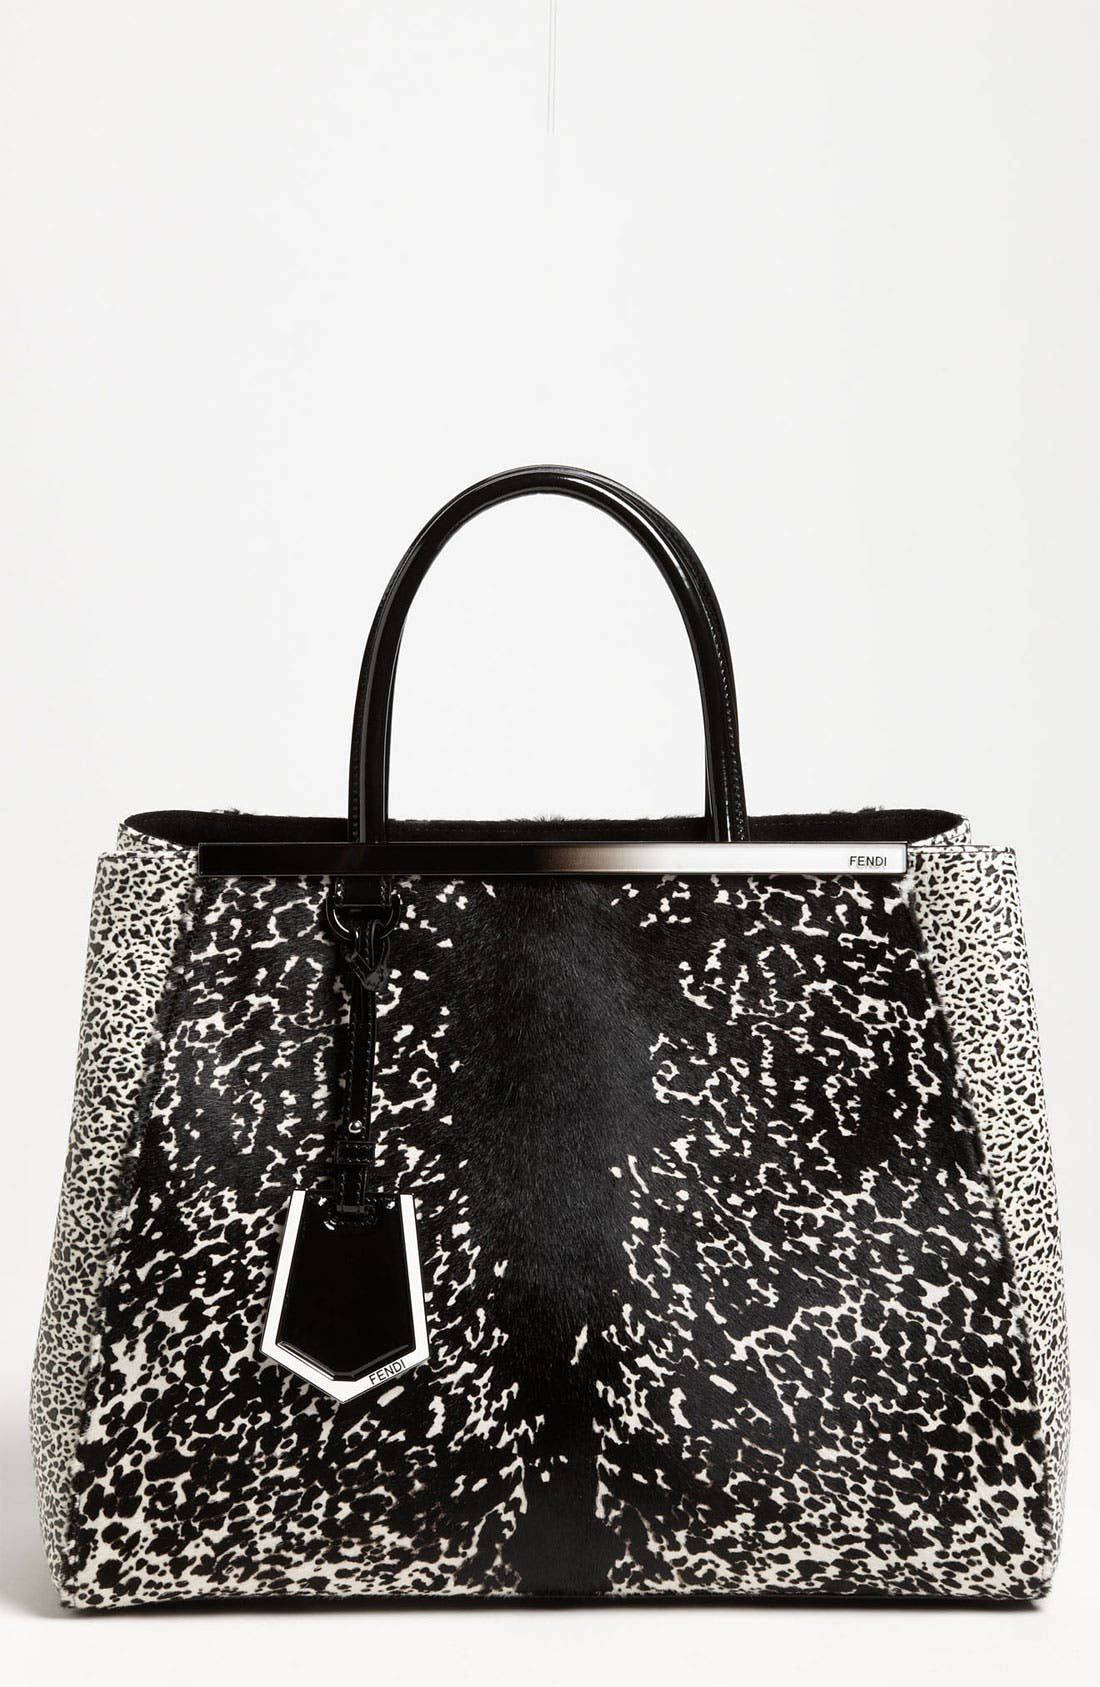 Alternate Image 1 Selected - Fendi '2Jours' Calf Hair Shopper